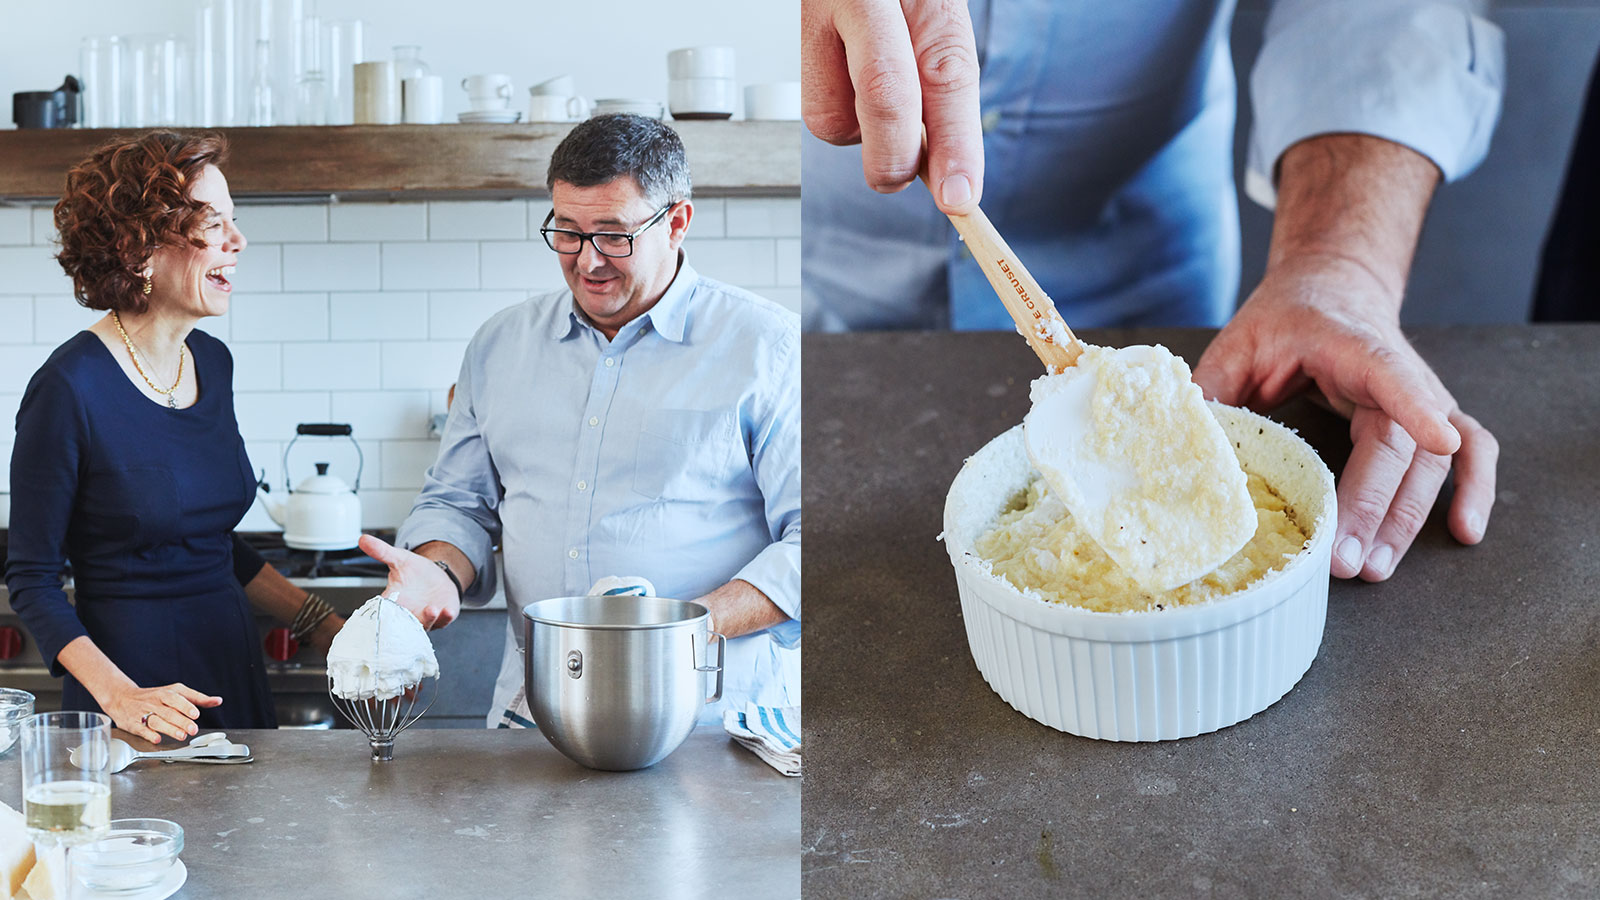 How to Make the Perfect Soufflé